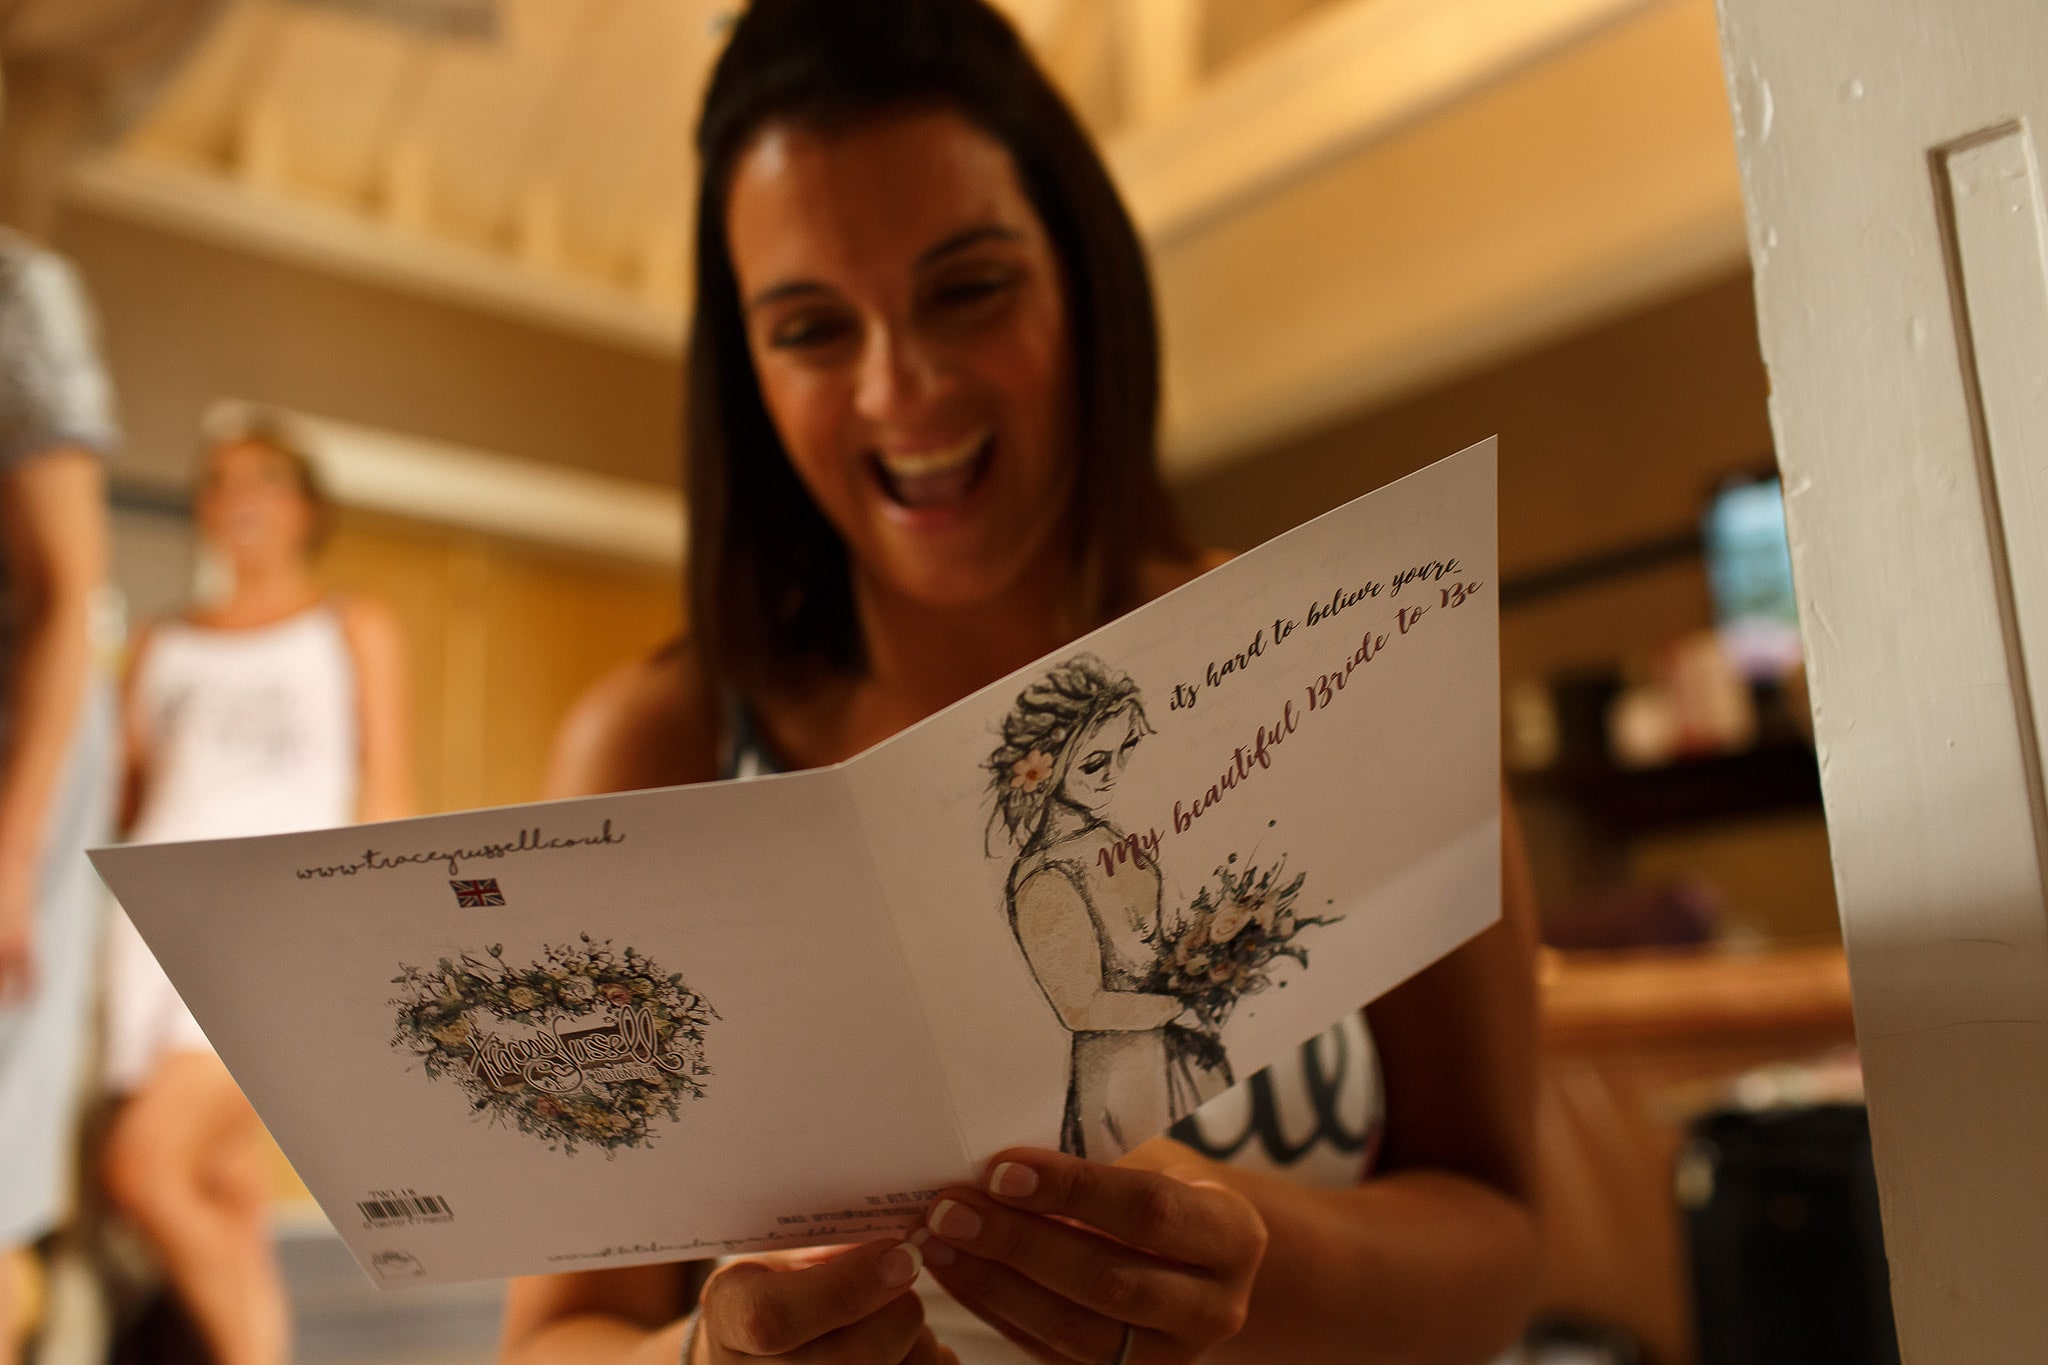 Bride laughing at wedding card from the groom